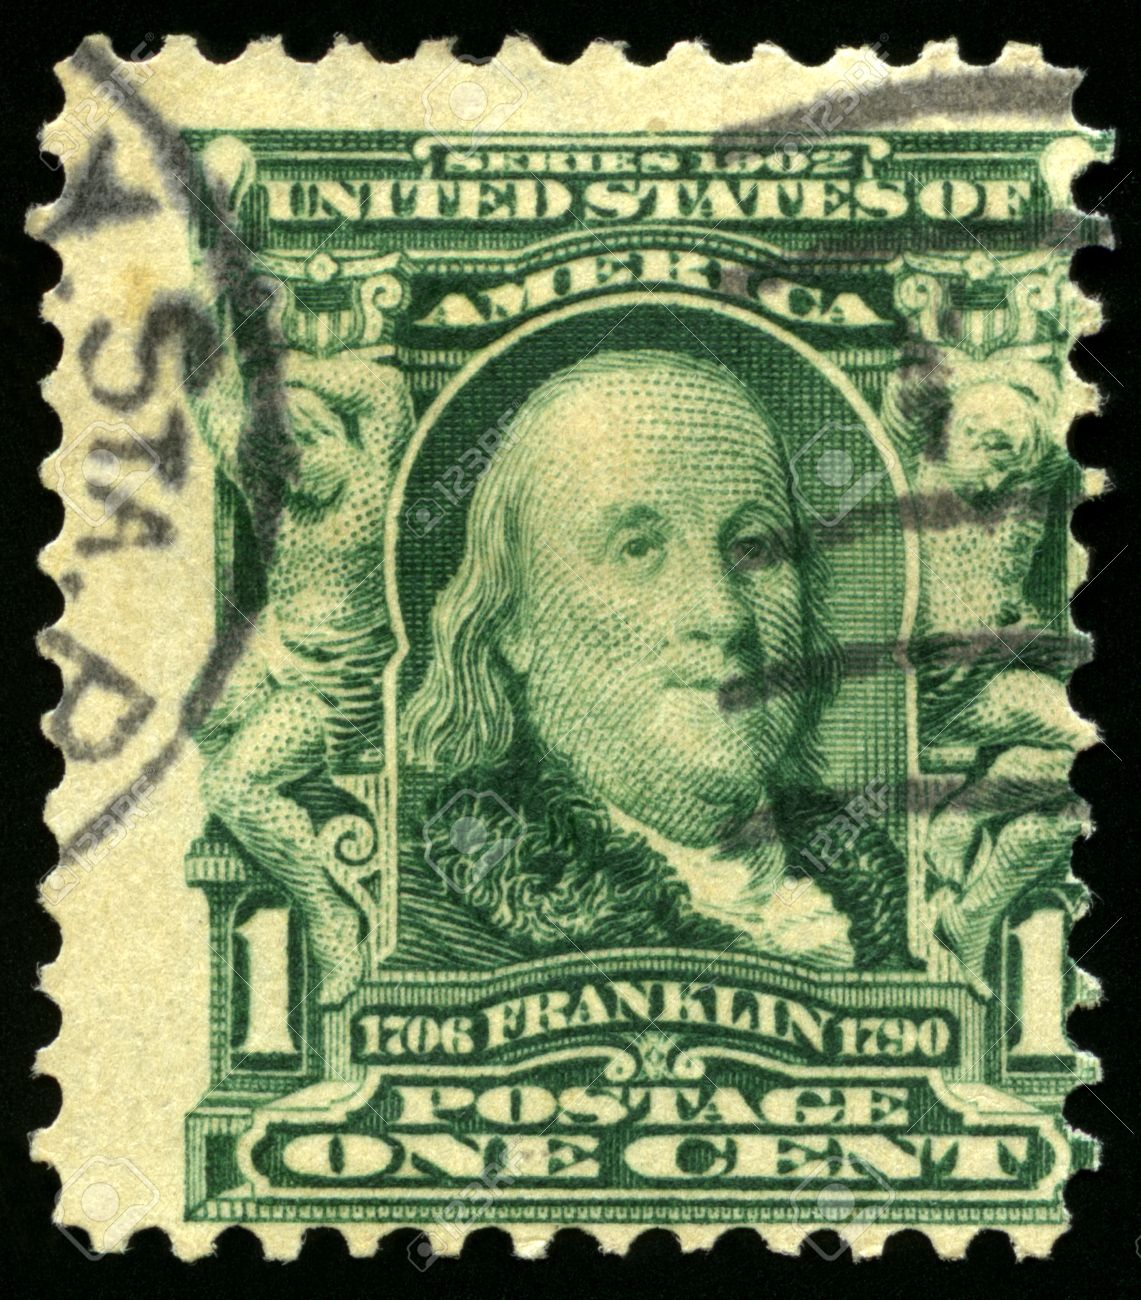 UNITED STATES CIRCA 1902 Vintage US Postage Stamp Celebrating Benjamin Franklin Circa